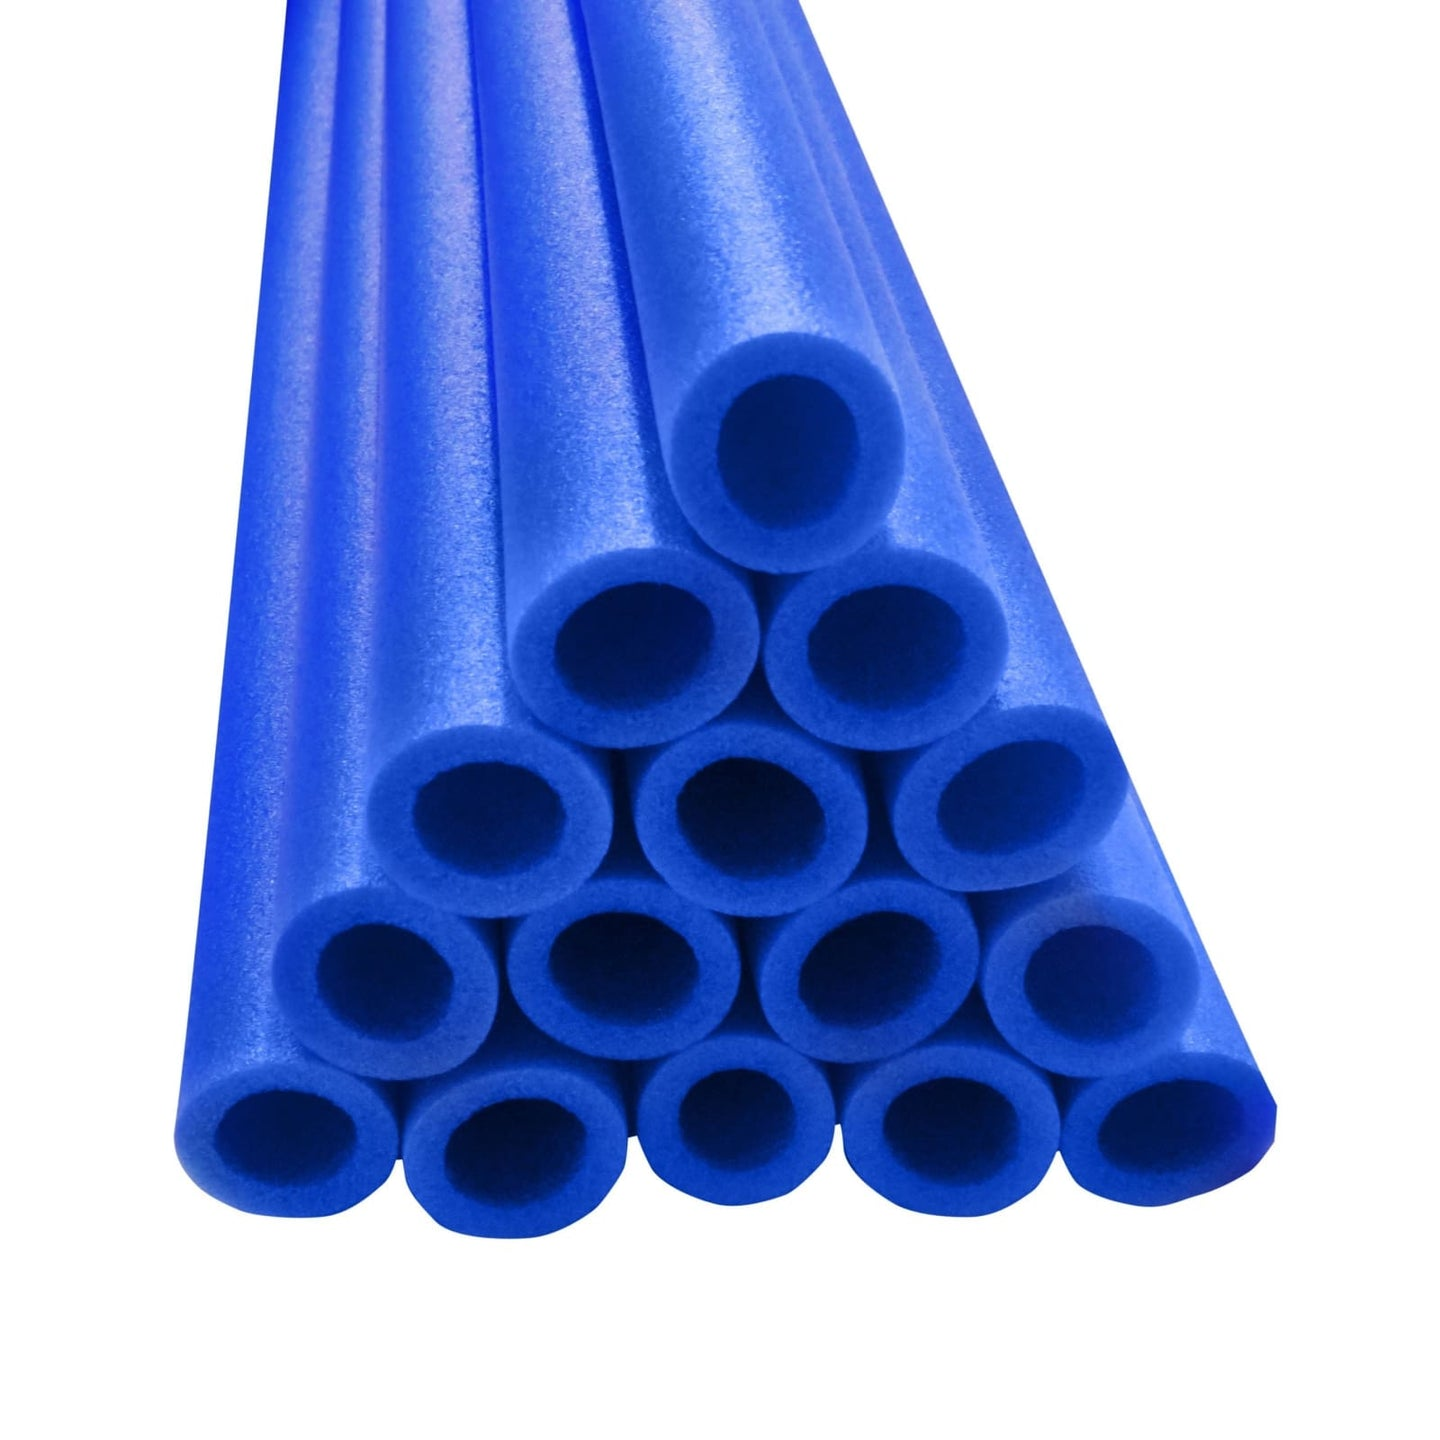 Upper Bounce 44 Inch Trampoline Pole Foam Sleeves Fits For 1.5 Diameter Pole - Set Of 16 -Blue - Trampoline Replacements